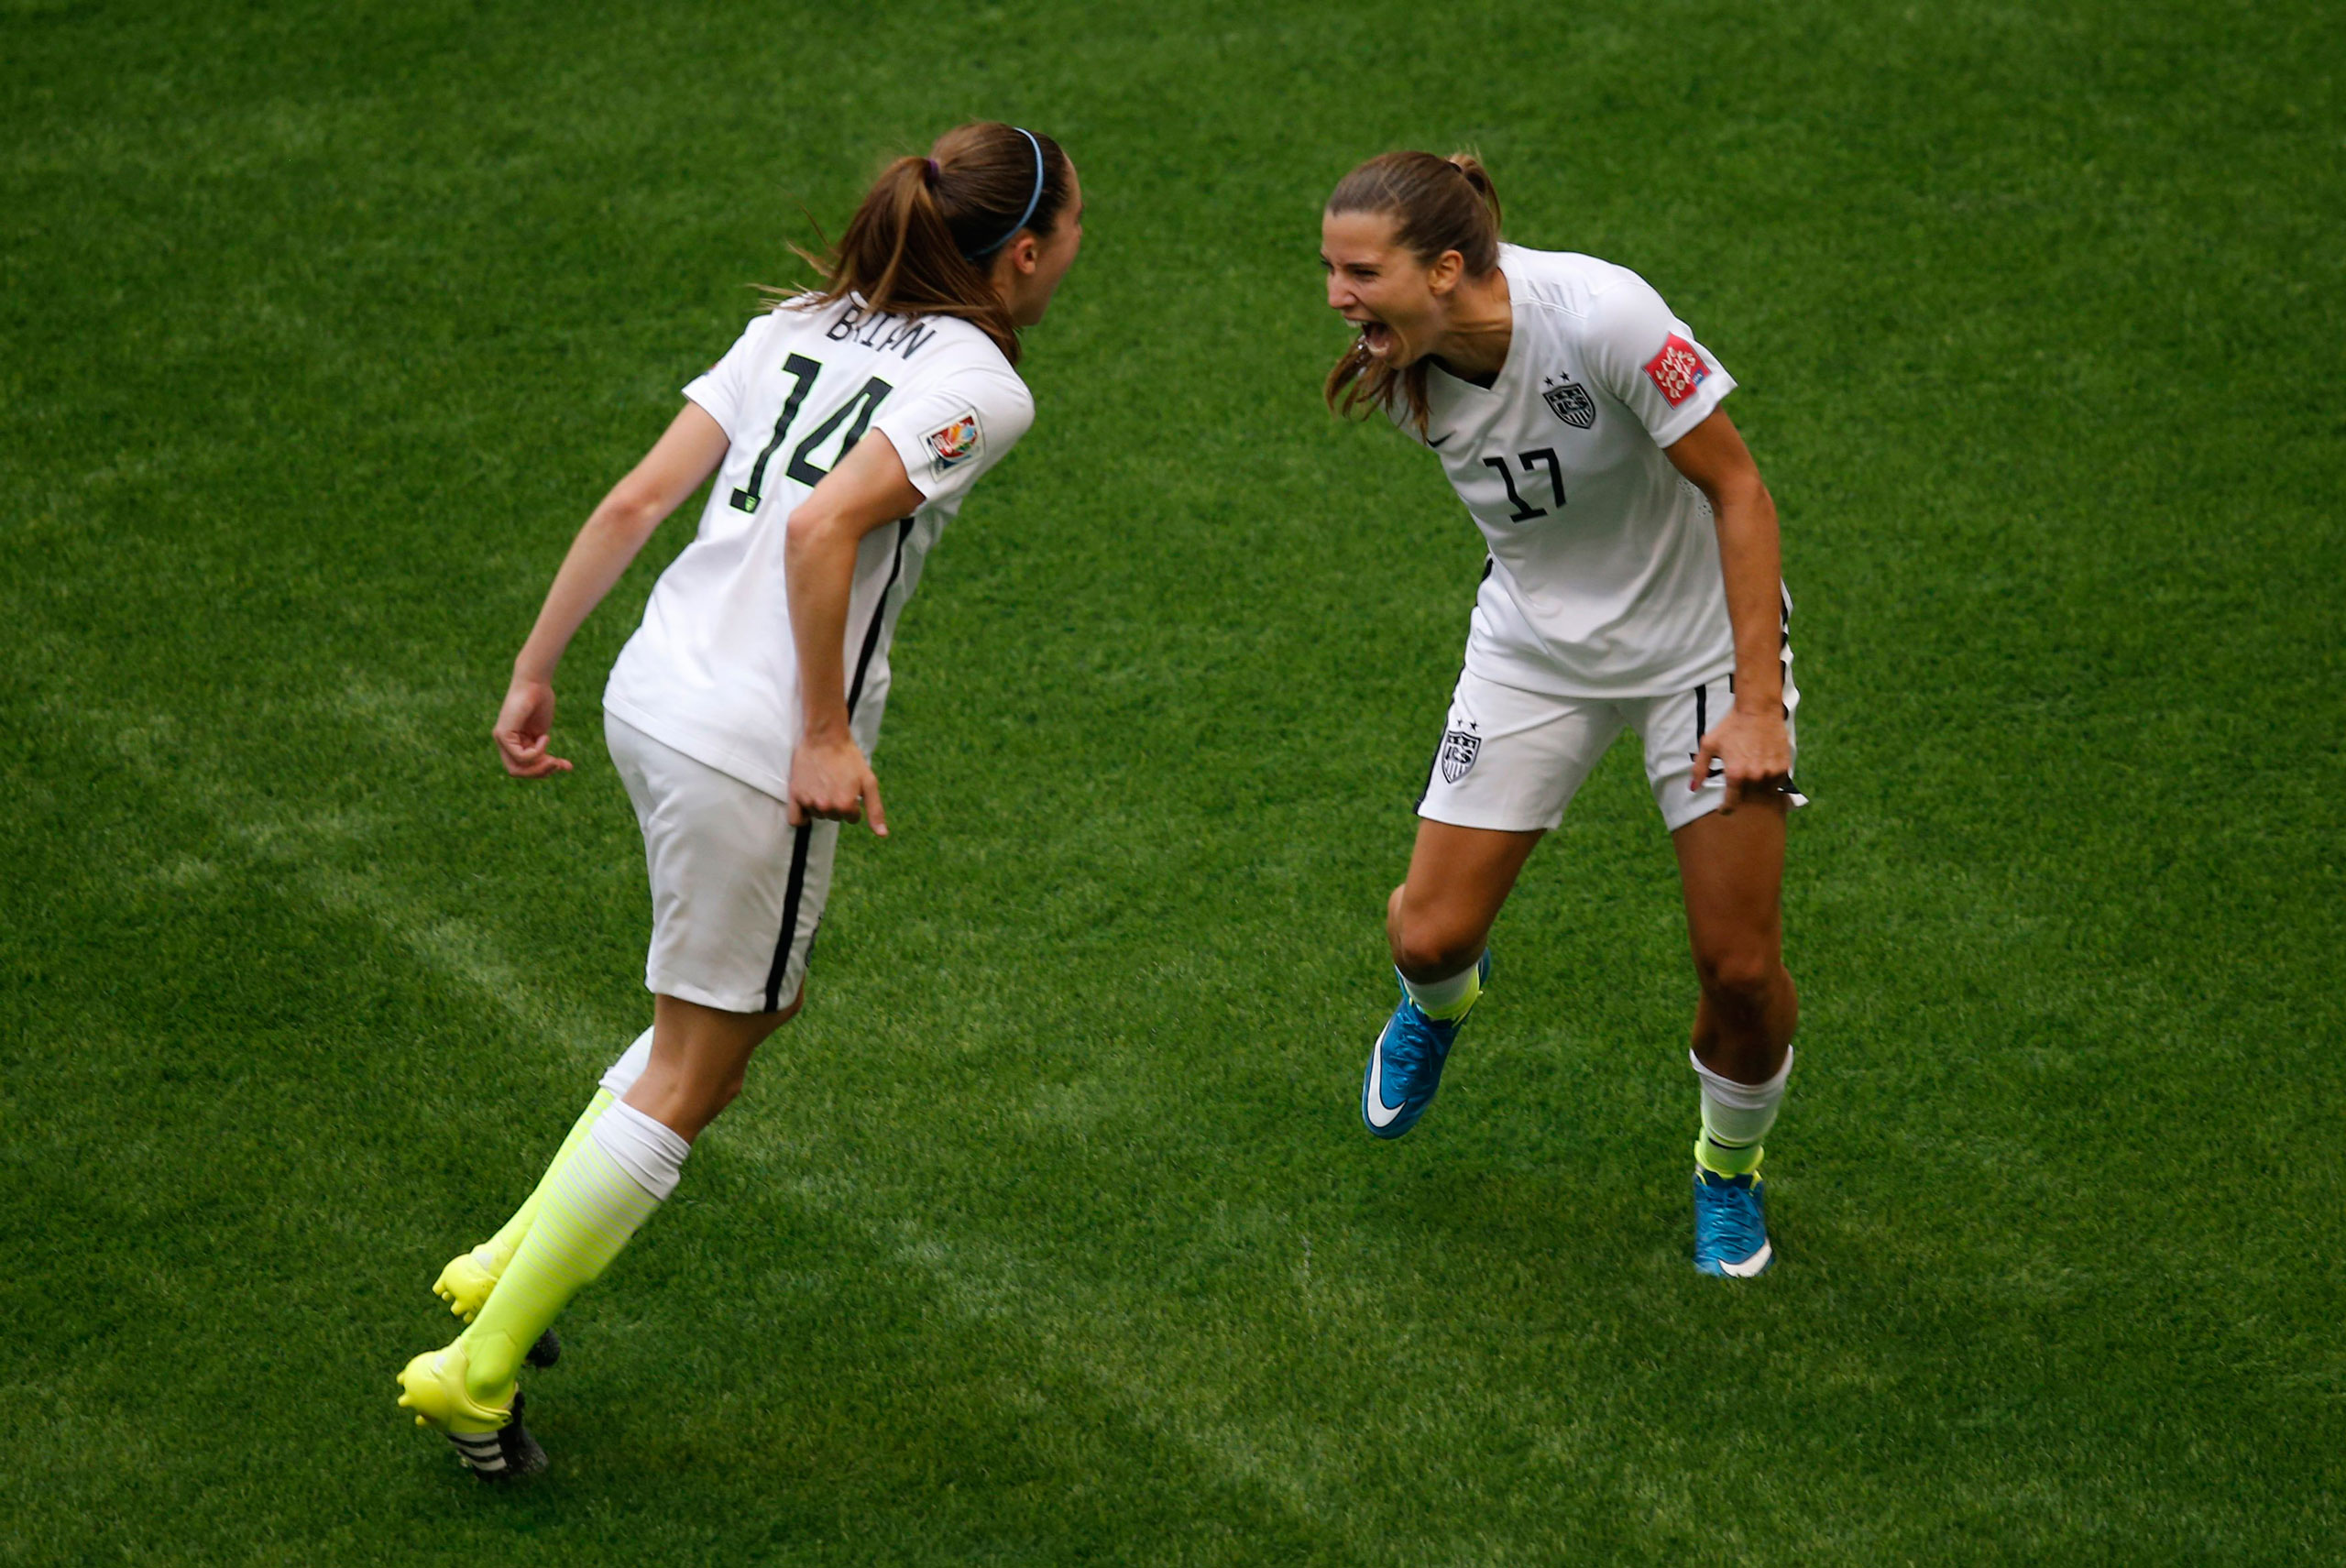 Tobin Heath celebrates with midfielder Morgan Brian after scoring against Japan during the second half of the final of the FIFA 2015 Women's World Cup at BC Place Stadium in Vancouver, on July 5, 2015.